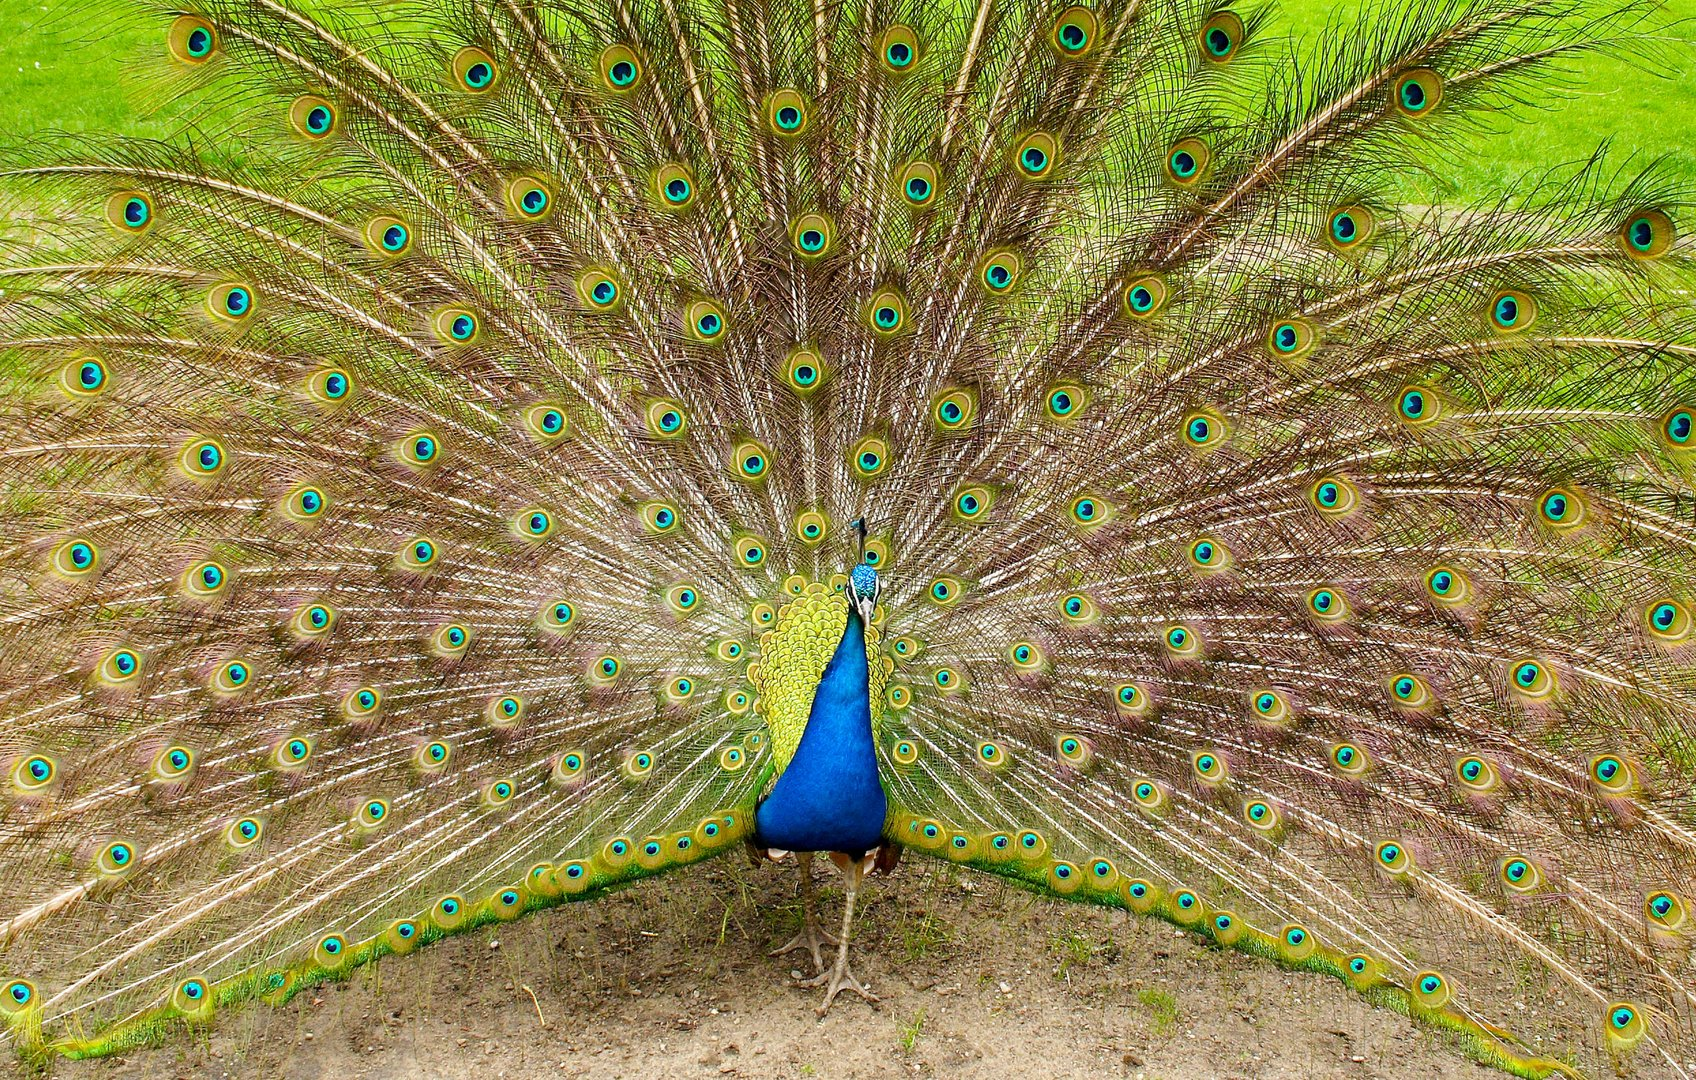 peacock shows its feathers